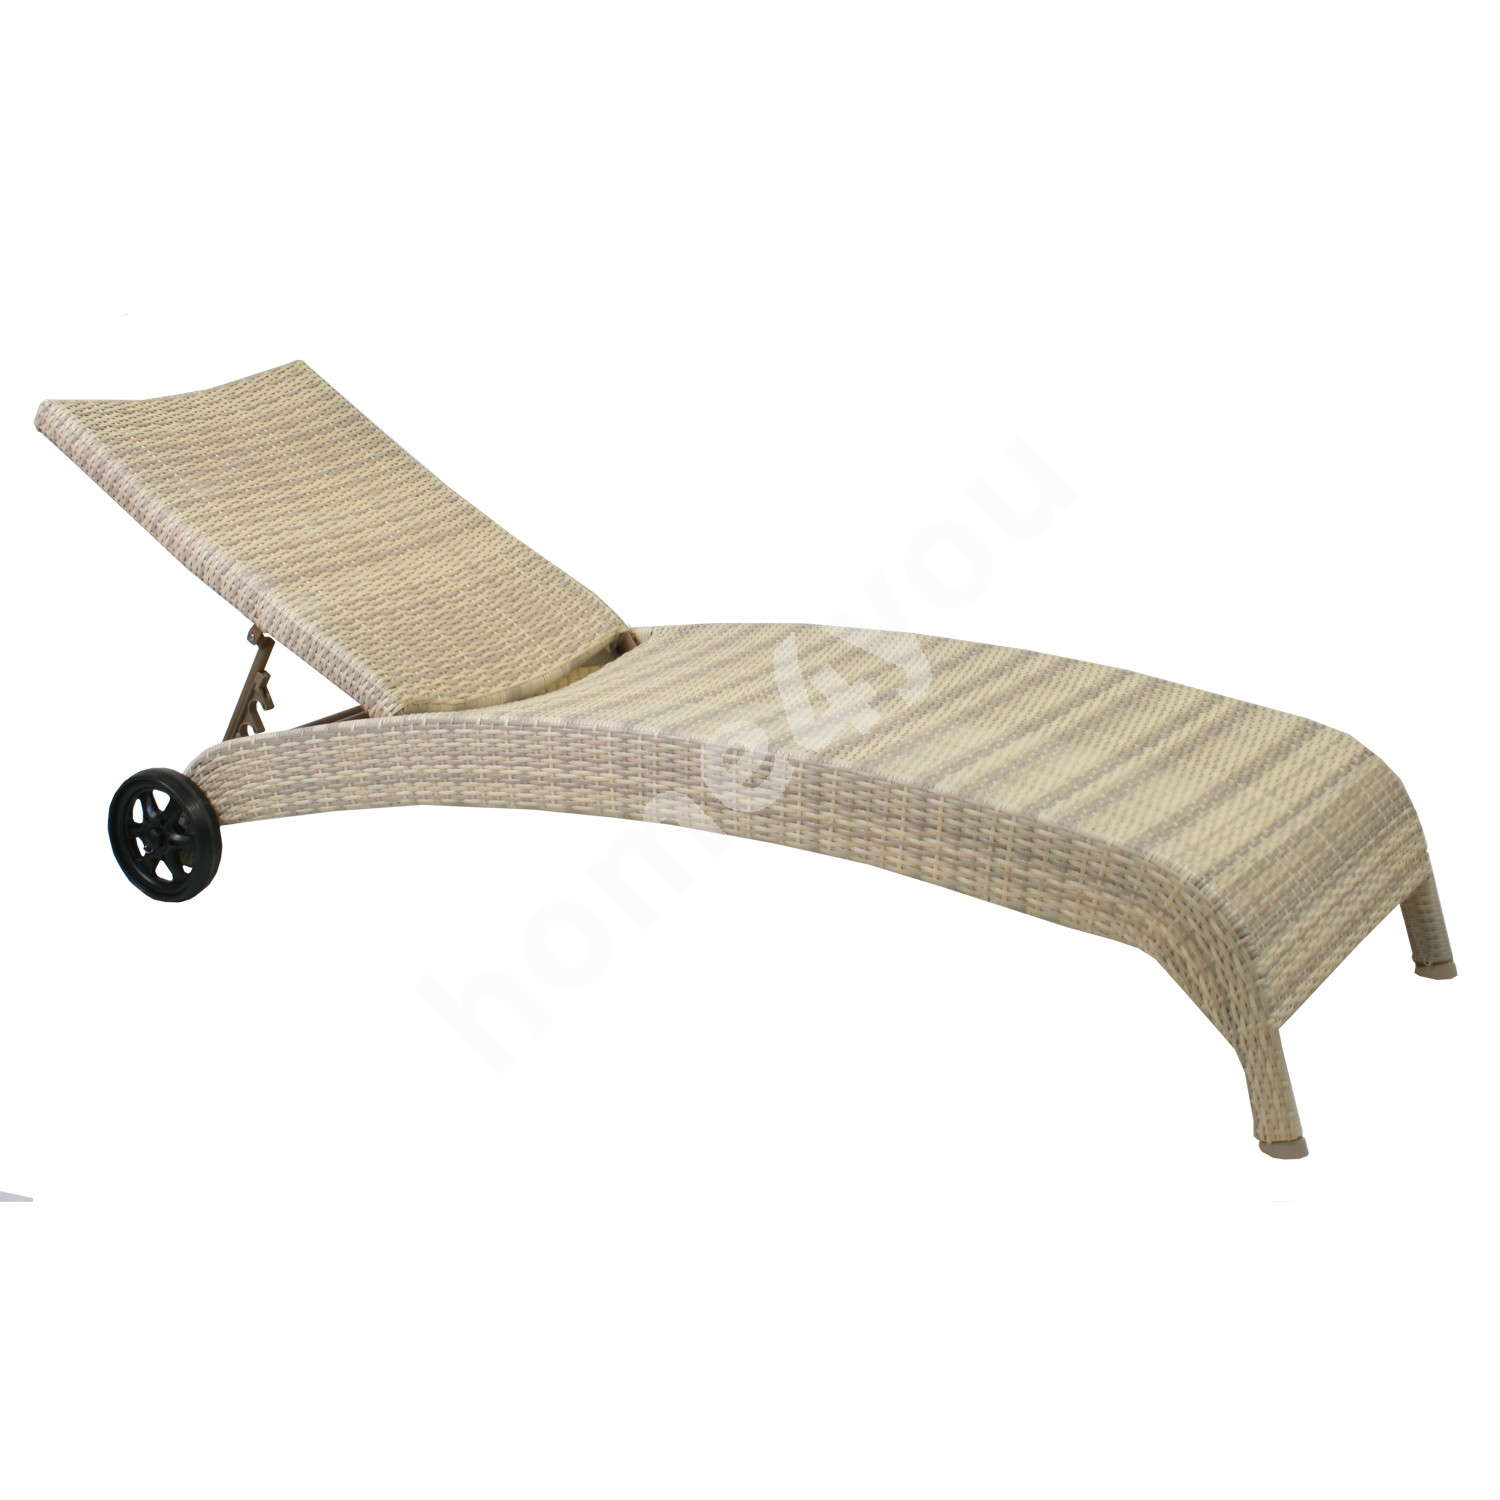 Deck chair WICKER 73x196x99cm, aluminum frame with plastic wicker, color: beige